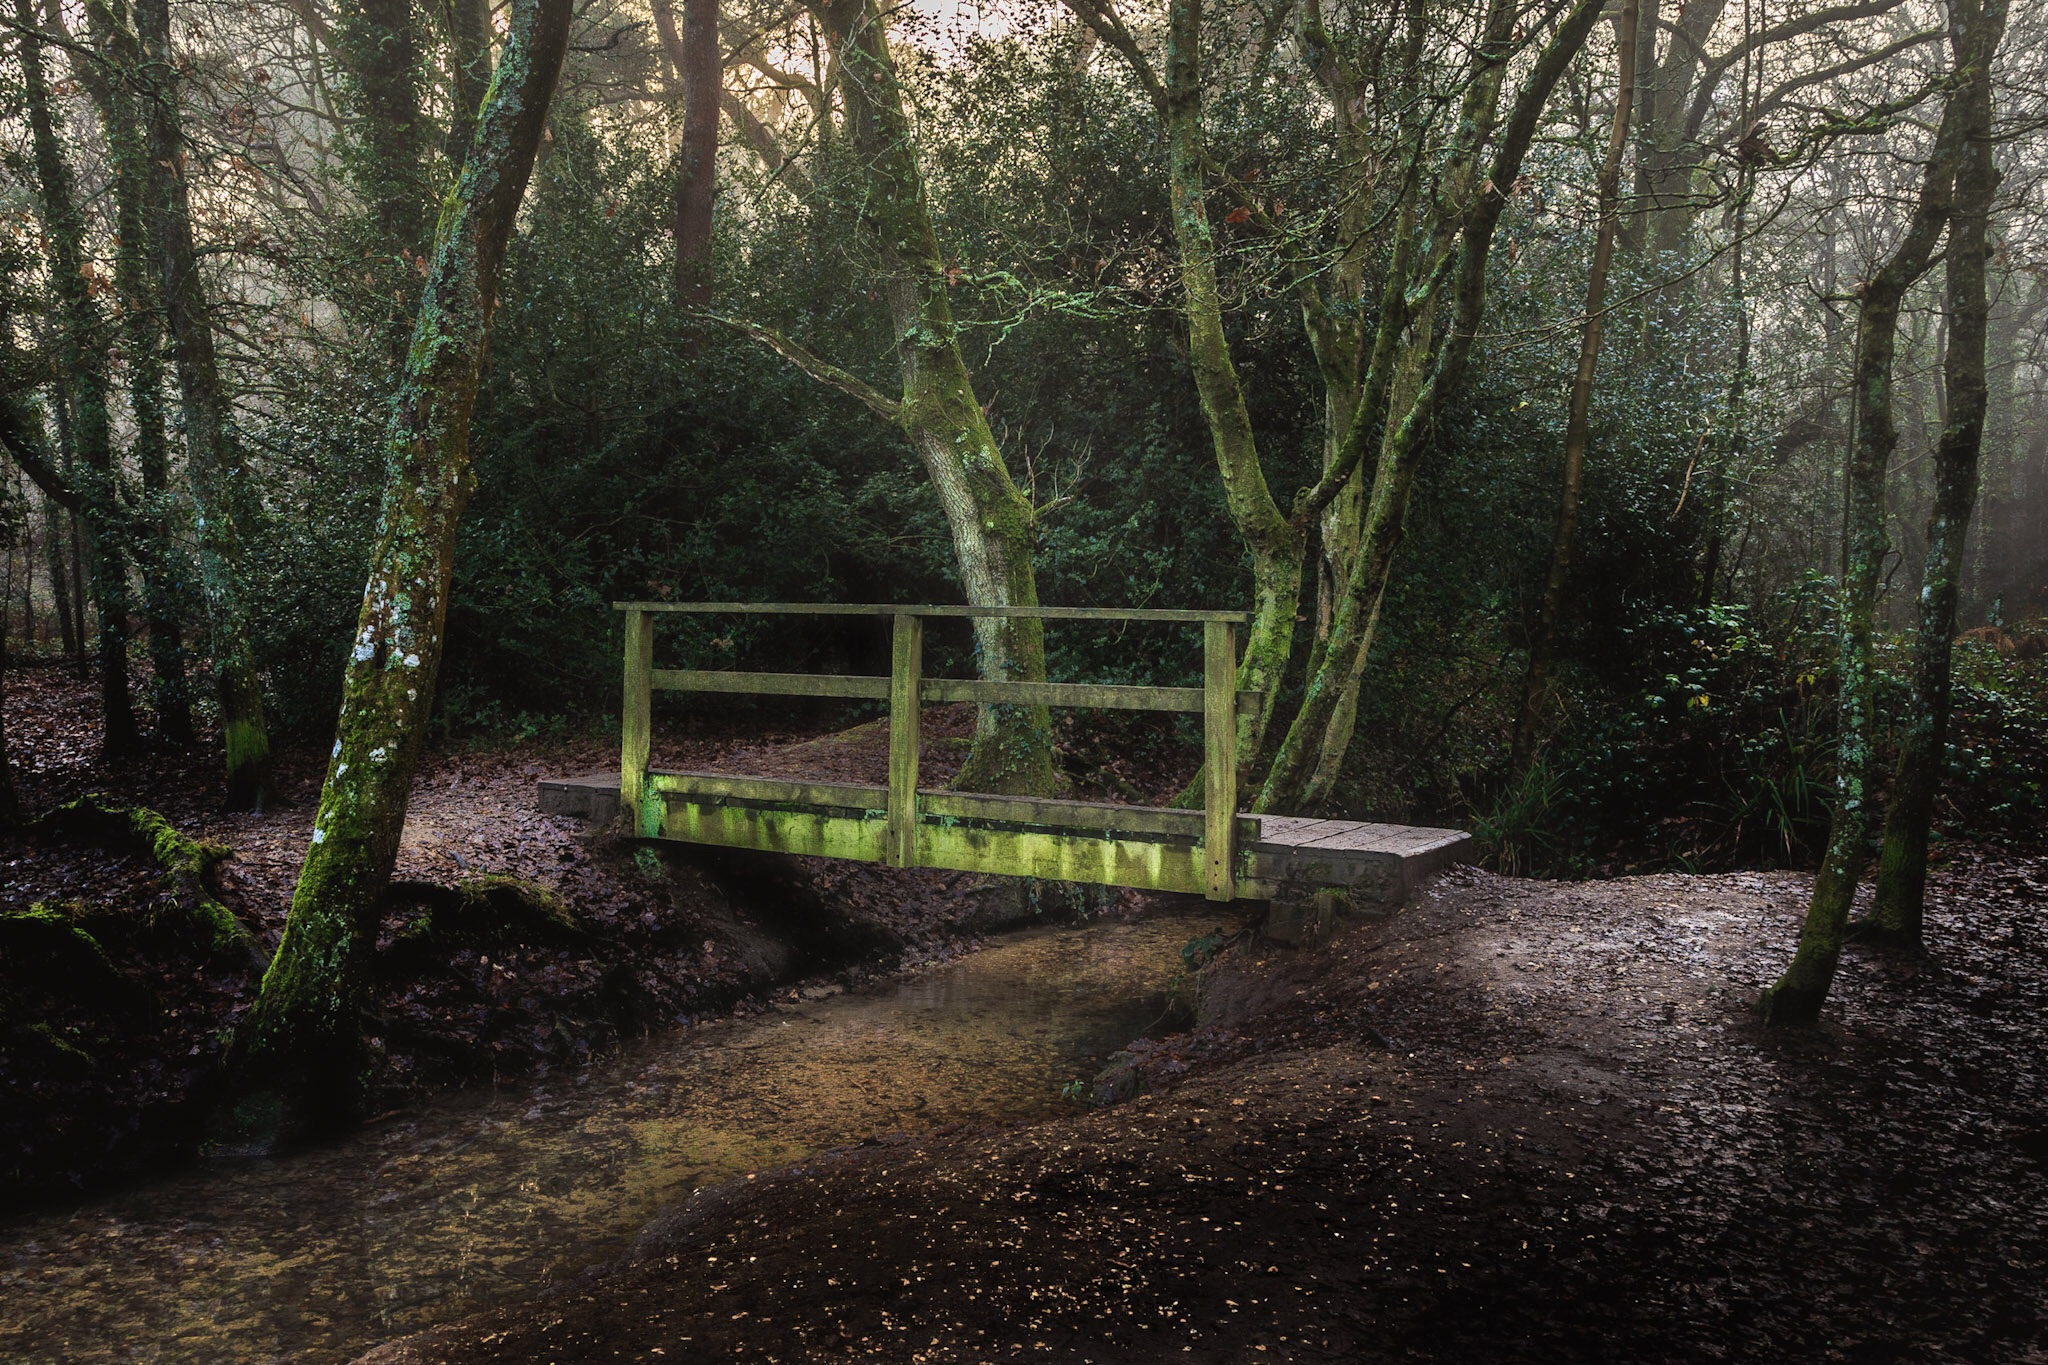 Picture of the bridge in the woods in Poole, Dorset